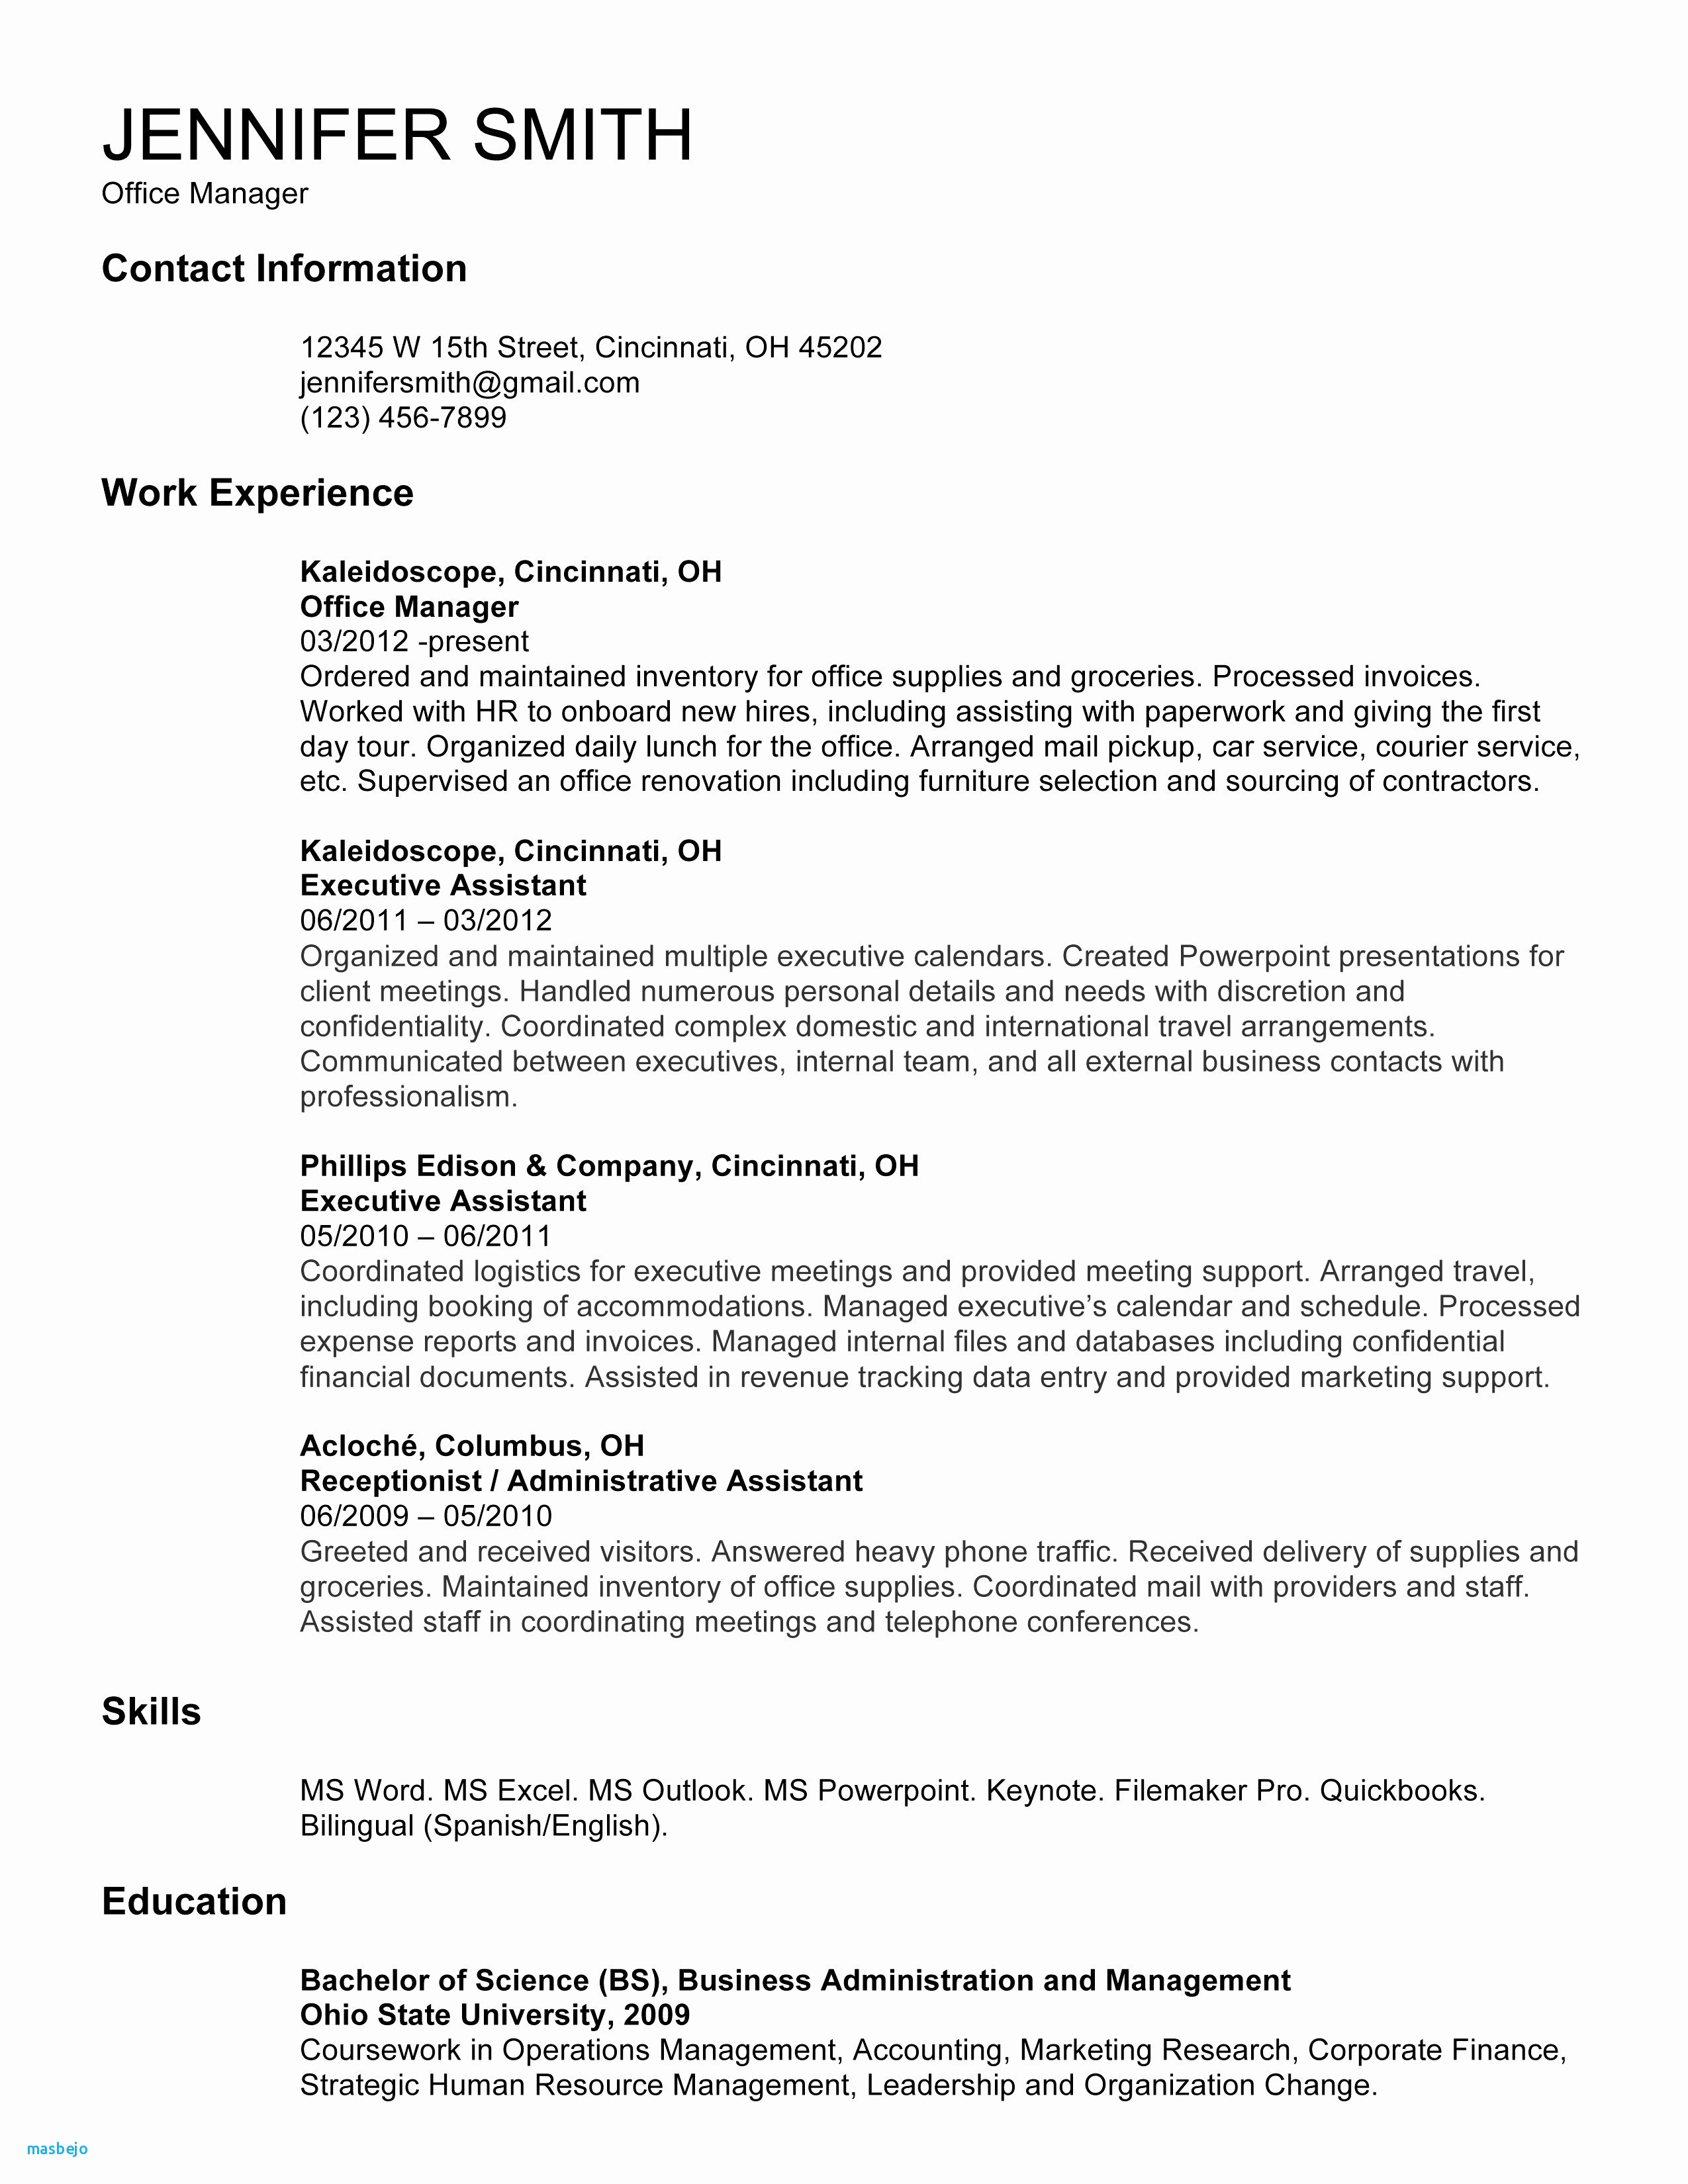 Internship Resume Sample for College Students - Internship Resume Example Intern Resume Sample Lovely College Resume